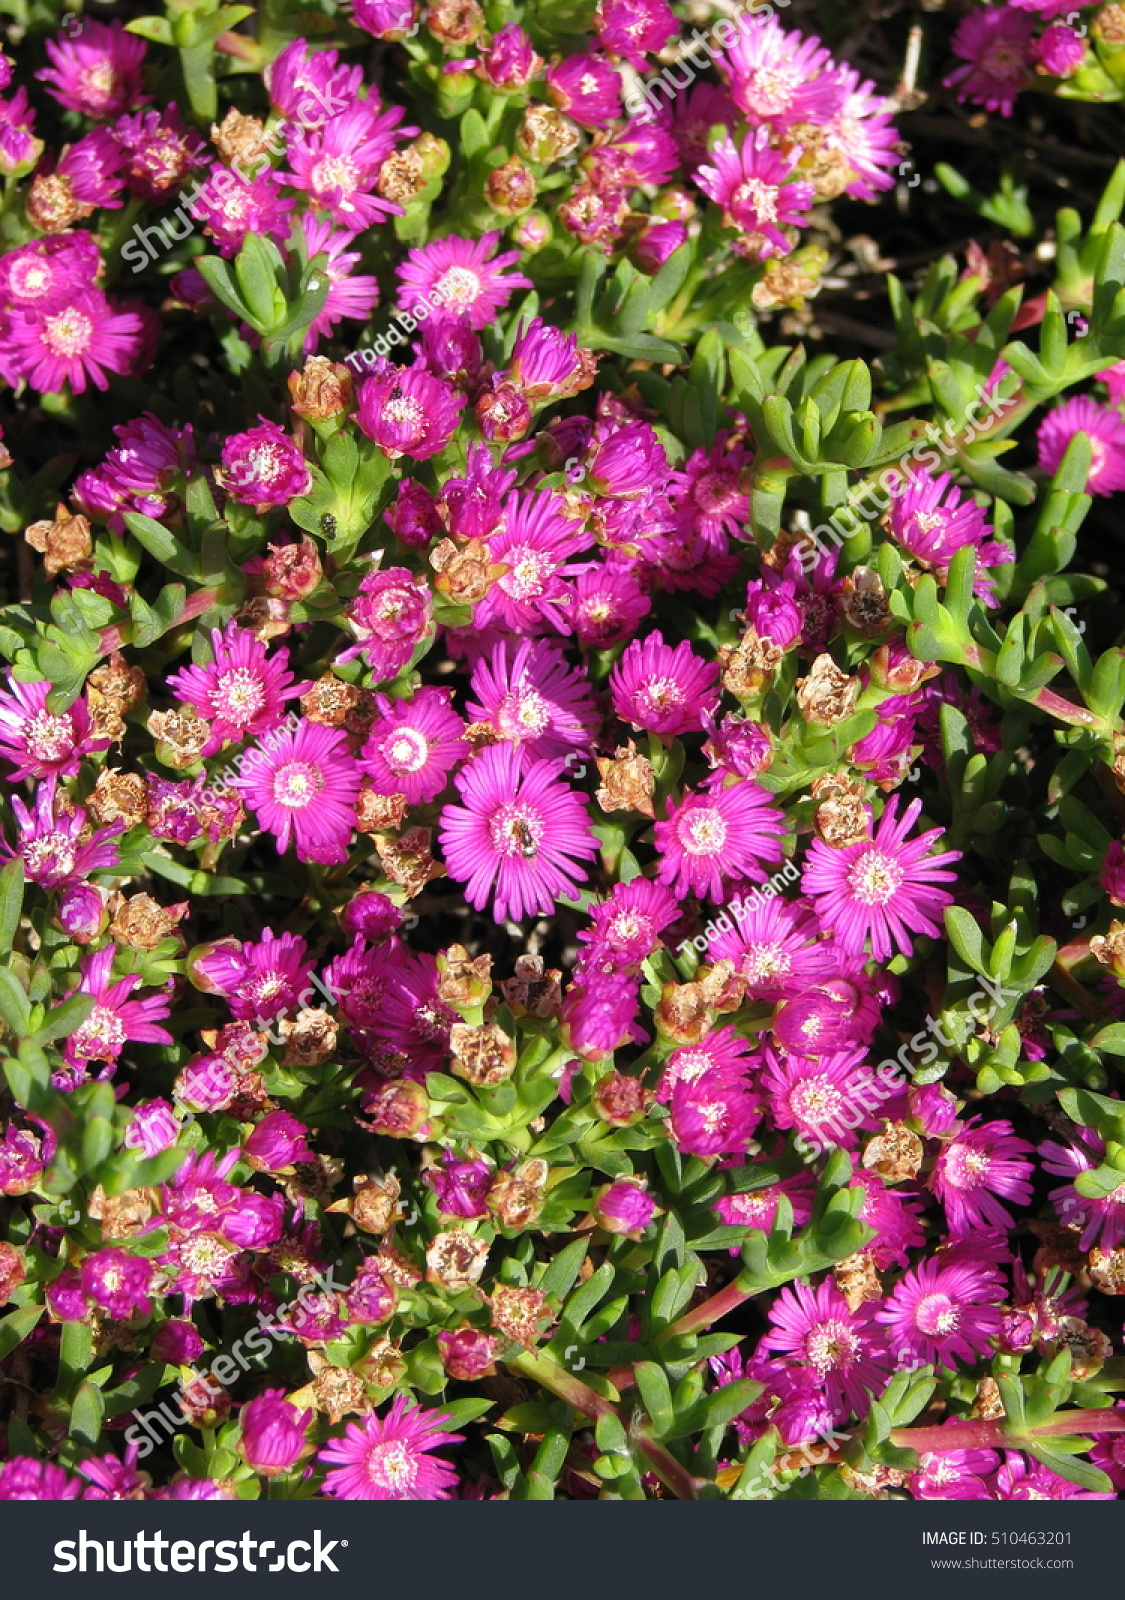 Pink daisylike flowers on succulent plant stock photo edit now pink daisy like flowers on a succulent plant izmirmasajfo